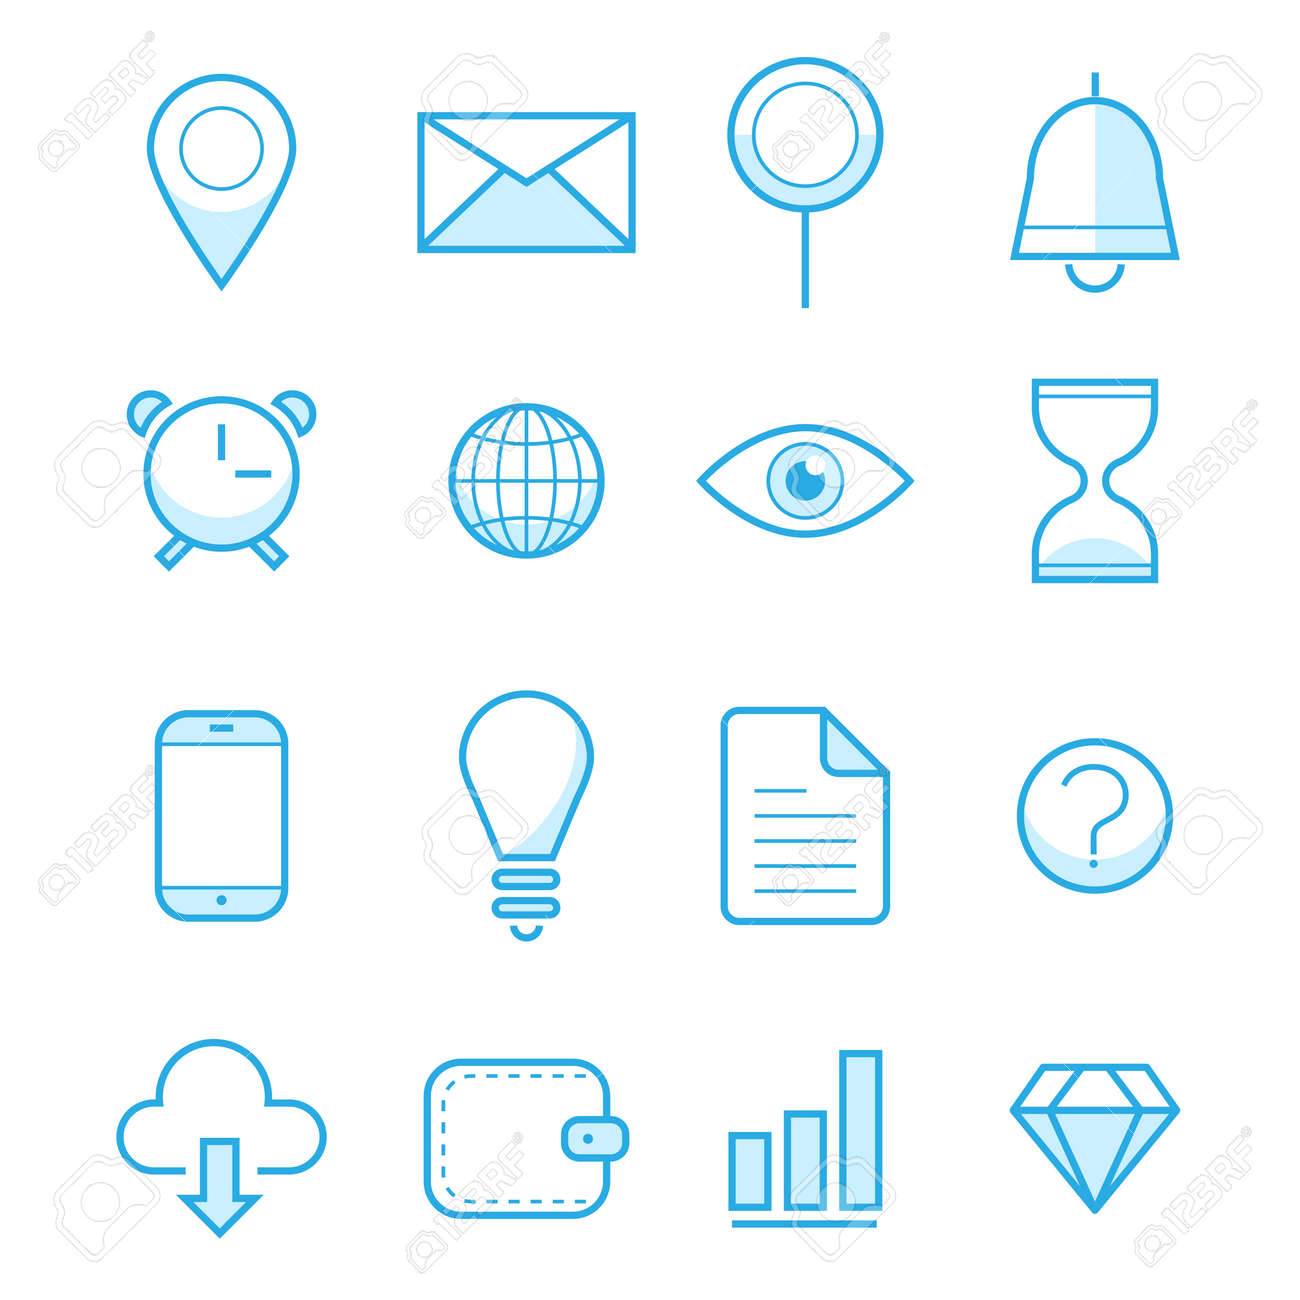 Vector illustration outline web icons set. Business, office work, financial growth, money, finance, management, payments, commerce, marketing. Corporate economic development. For internet and mobile apps, logo and graphics, web design. Thin line symbol co - 69126777